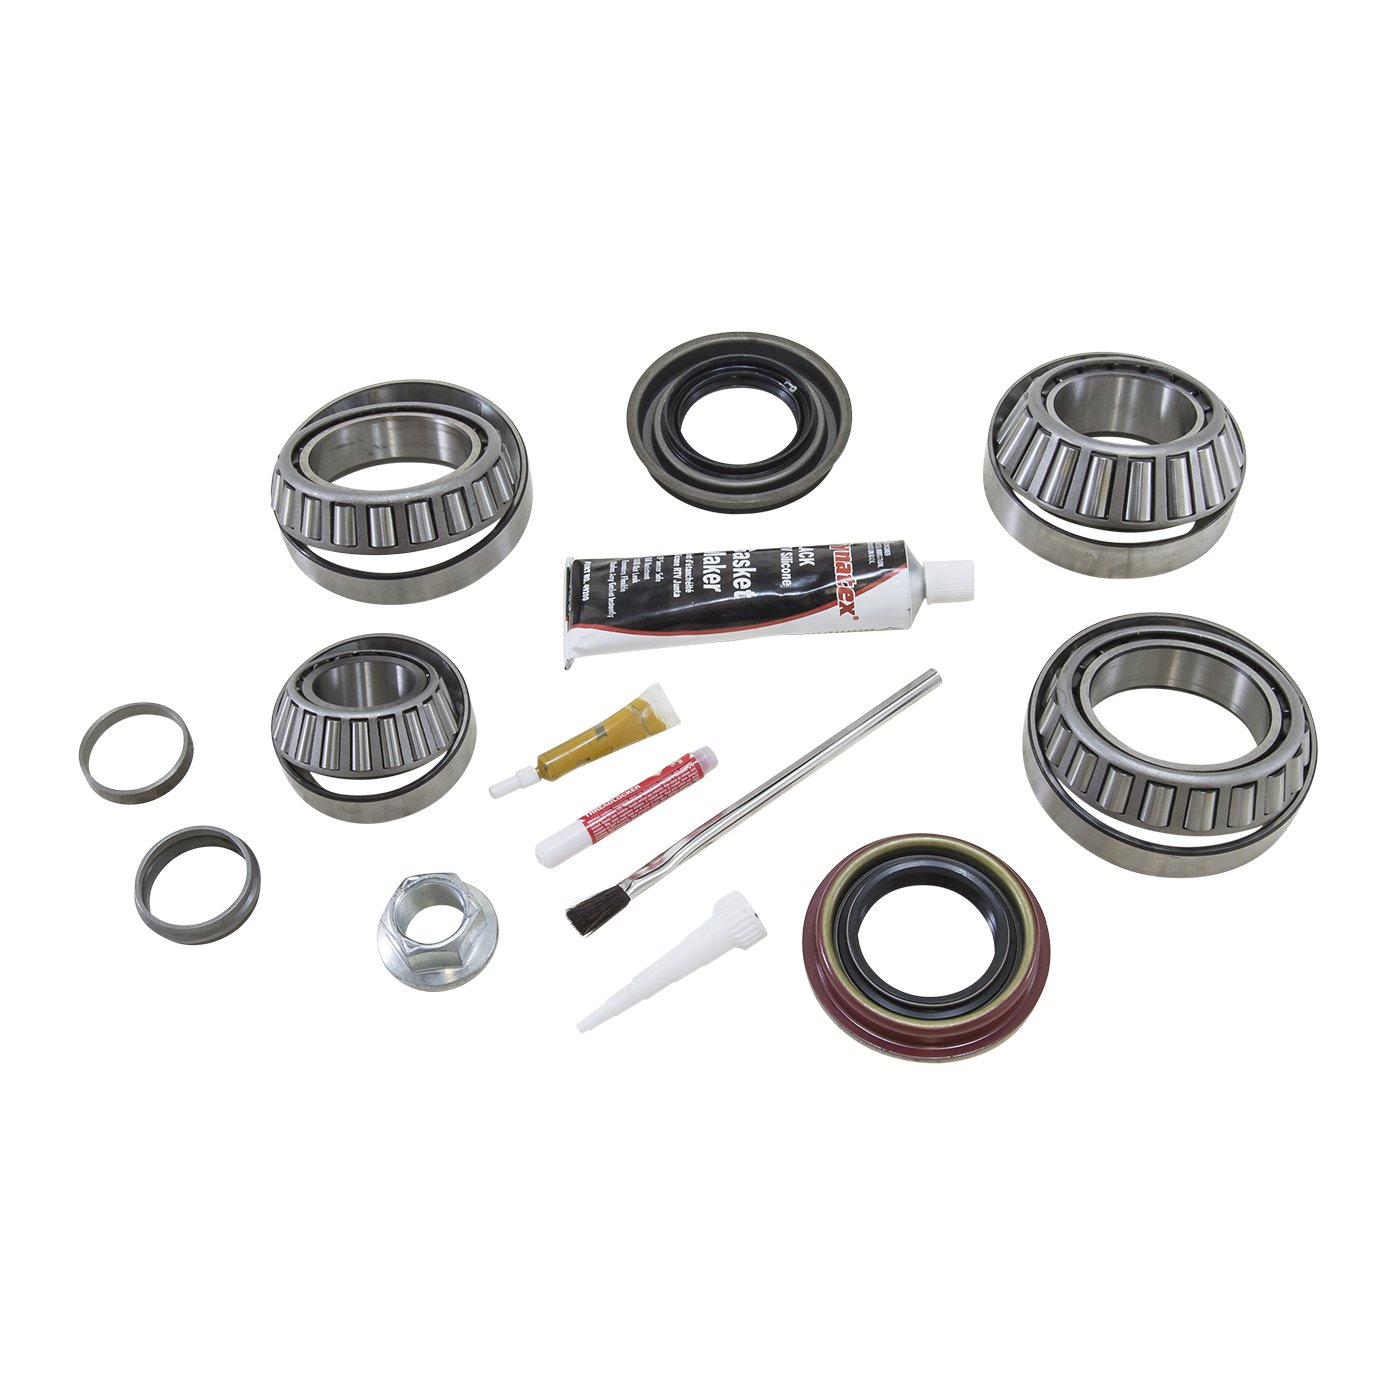 USA Standard Gear (ZBKF9.75-D) Bearing Kit for Ford 9.75 Differential by USA Standard Gear (Image #1)